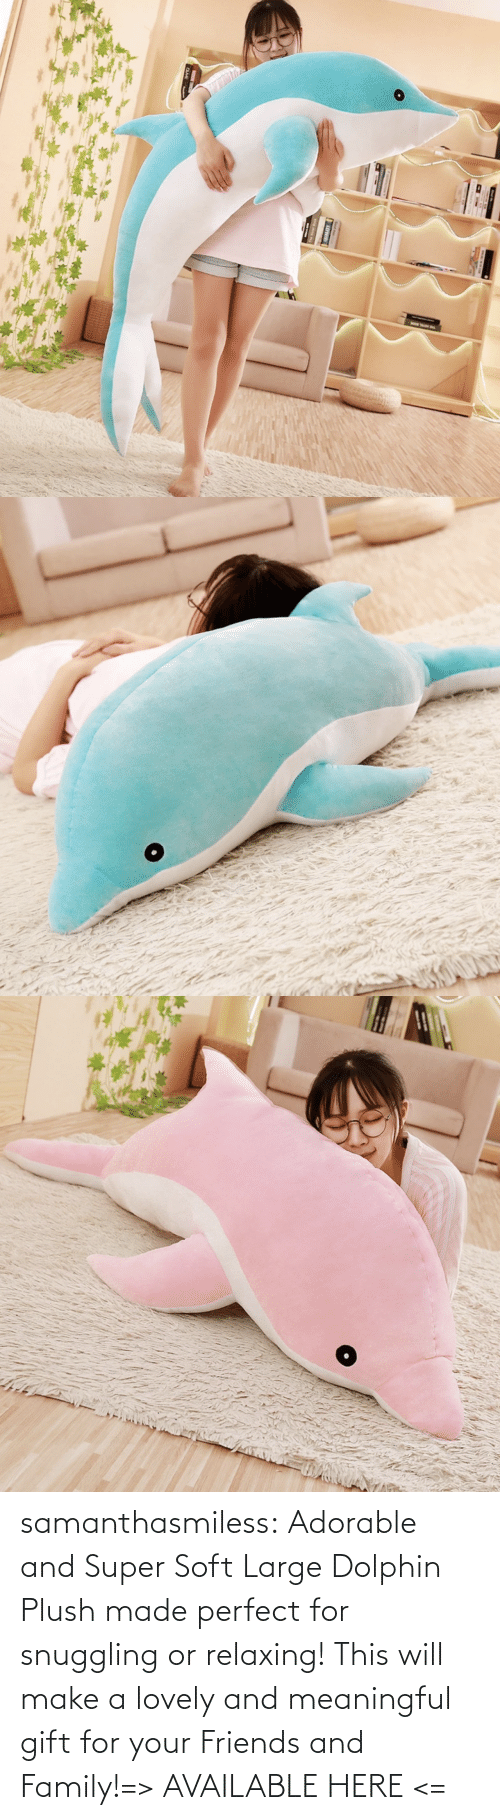 Adorable: samanthasmiless:  Adorable and Super Soft Large Dolphin Plush made perfect for snuggling or relaxing! This will make a lovely and meaningful gift for your Friends and Family!=> AVAILABLE HERE <=